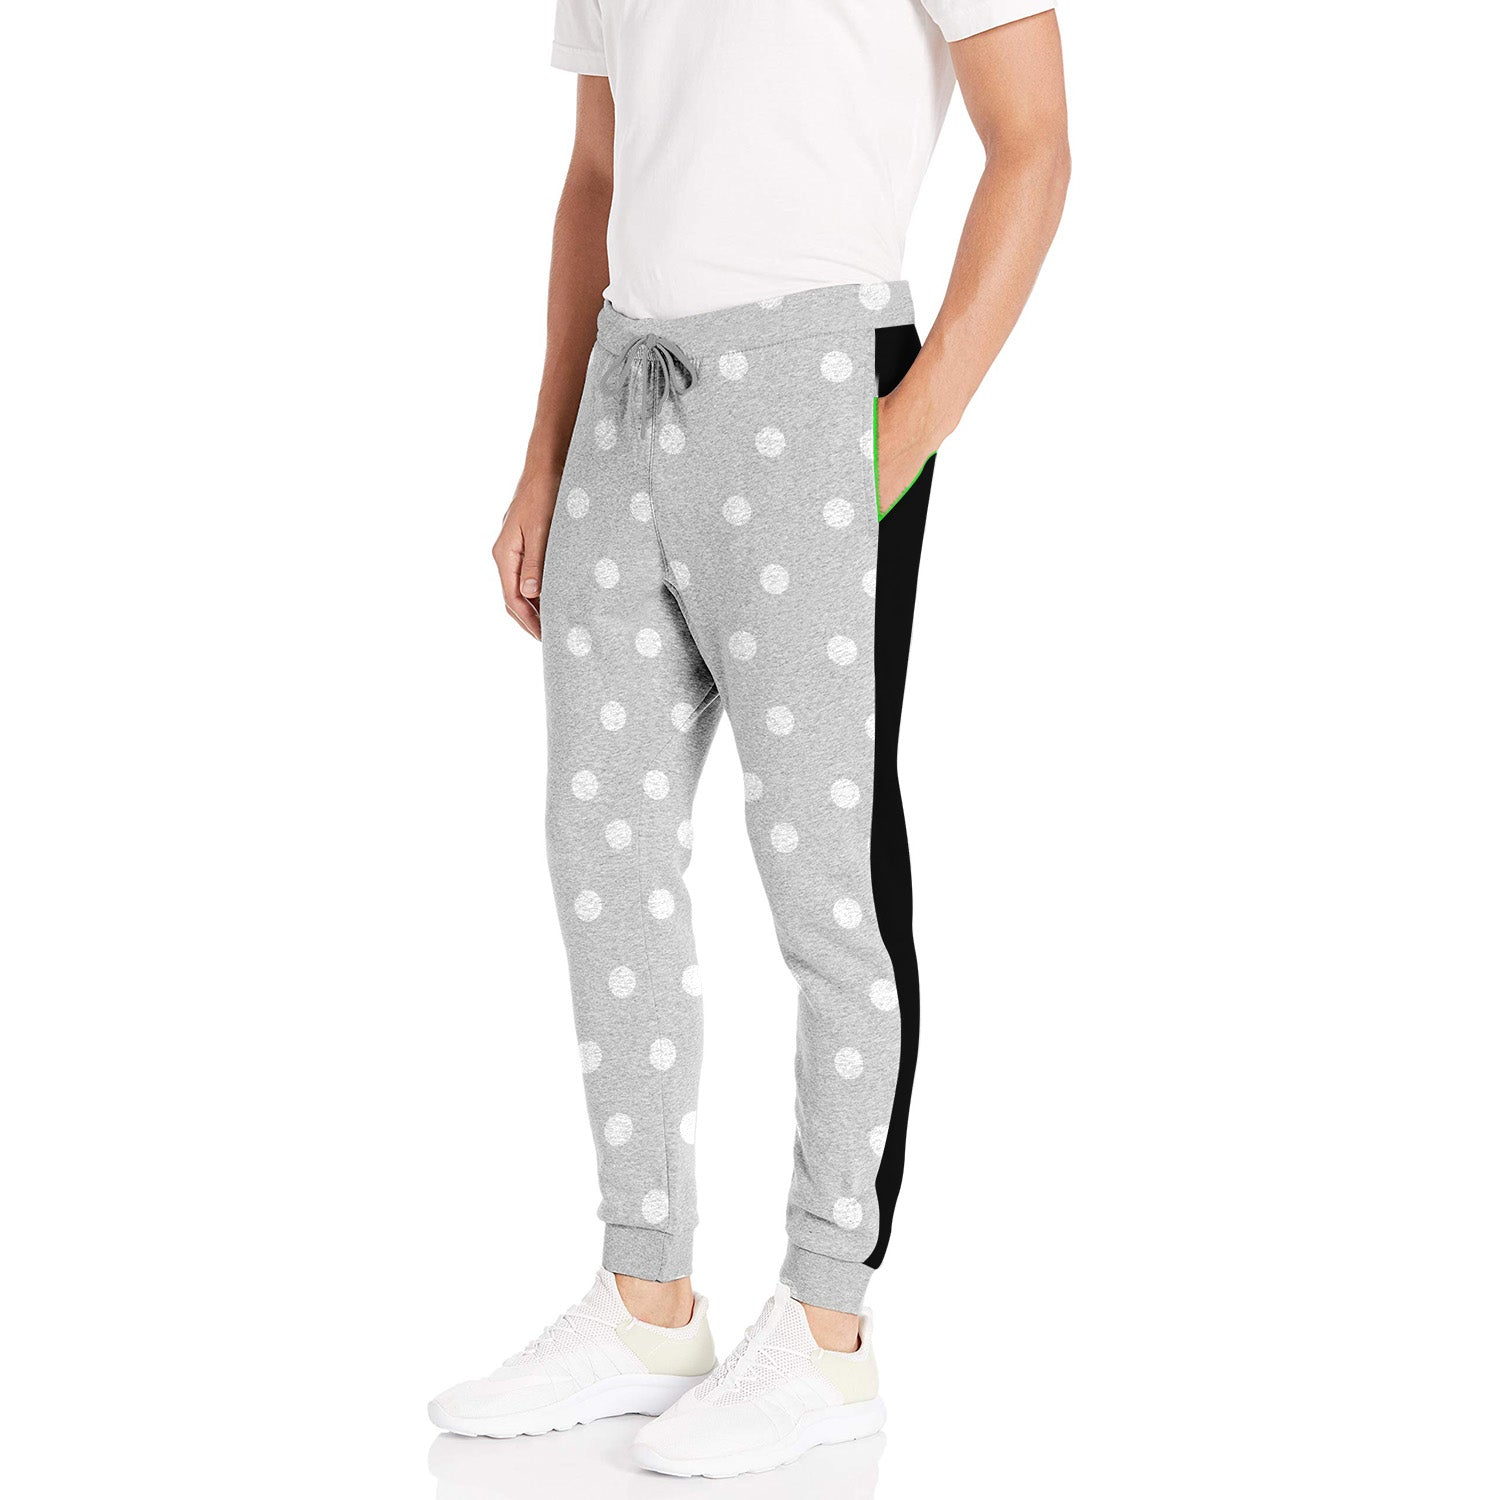 Diesel Summer Slim Fit Panel Trouser For Men-Grey Melange with White Dotted & Black Stripe-BE11976